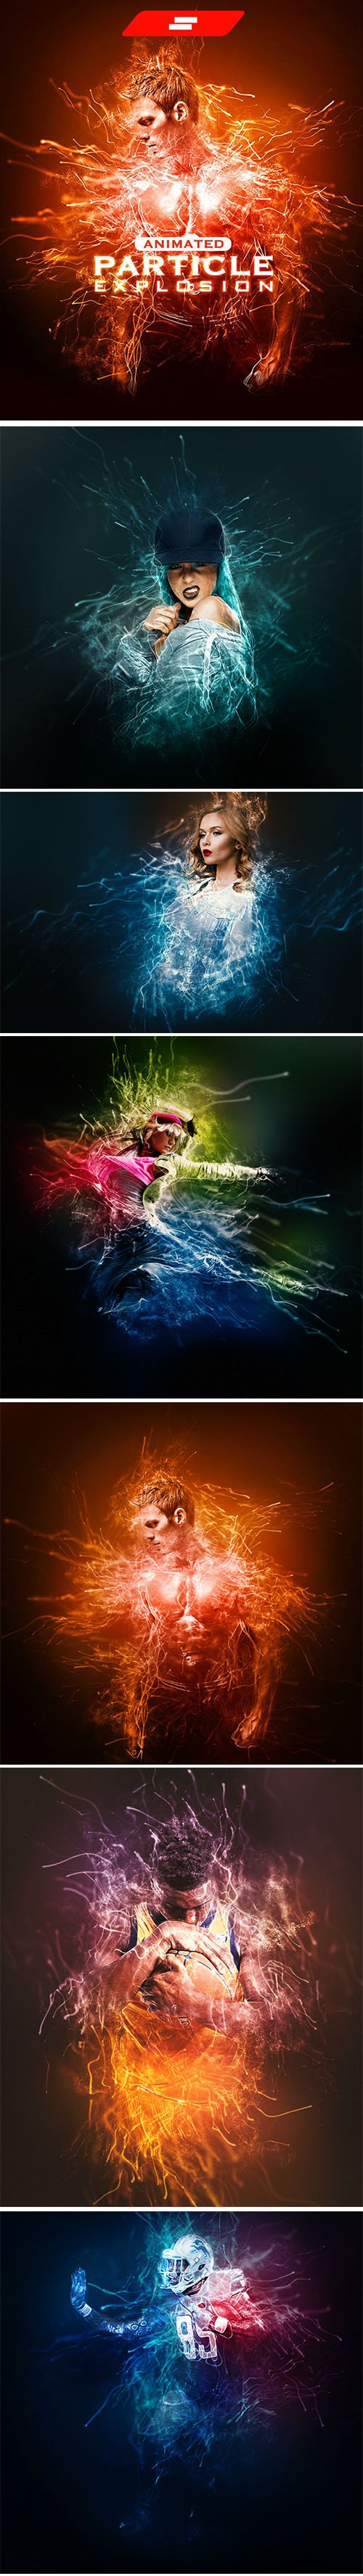 GraphicRiver - Gif Animated Particle Explosion Photoshop Action